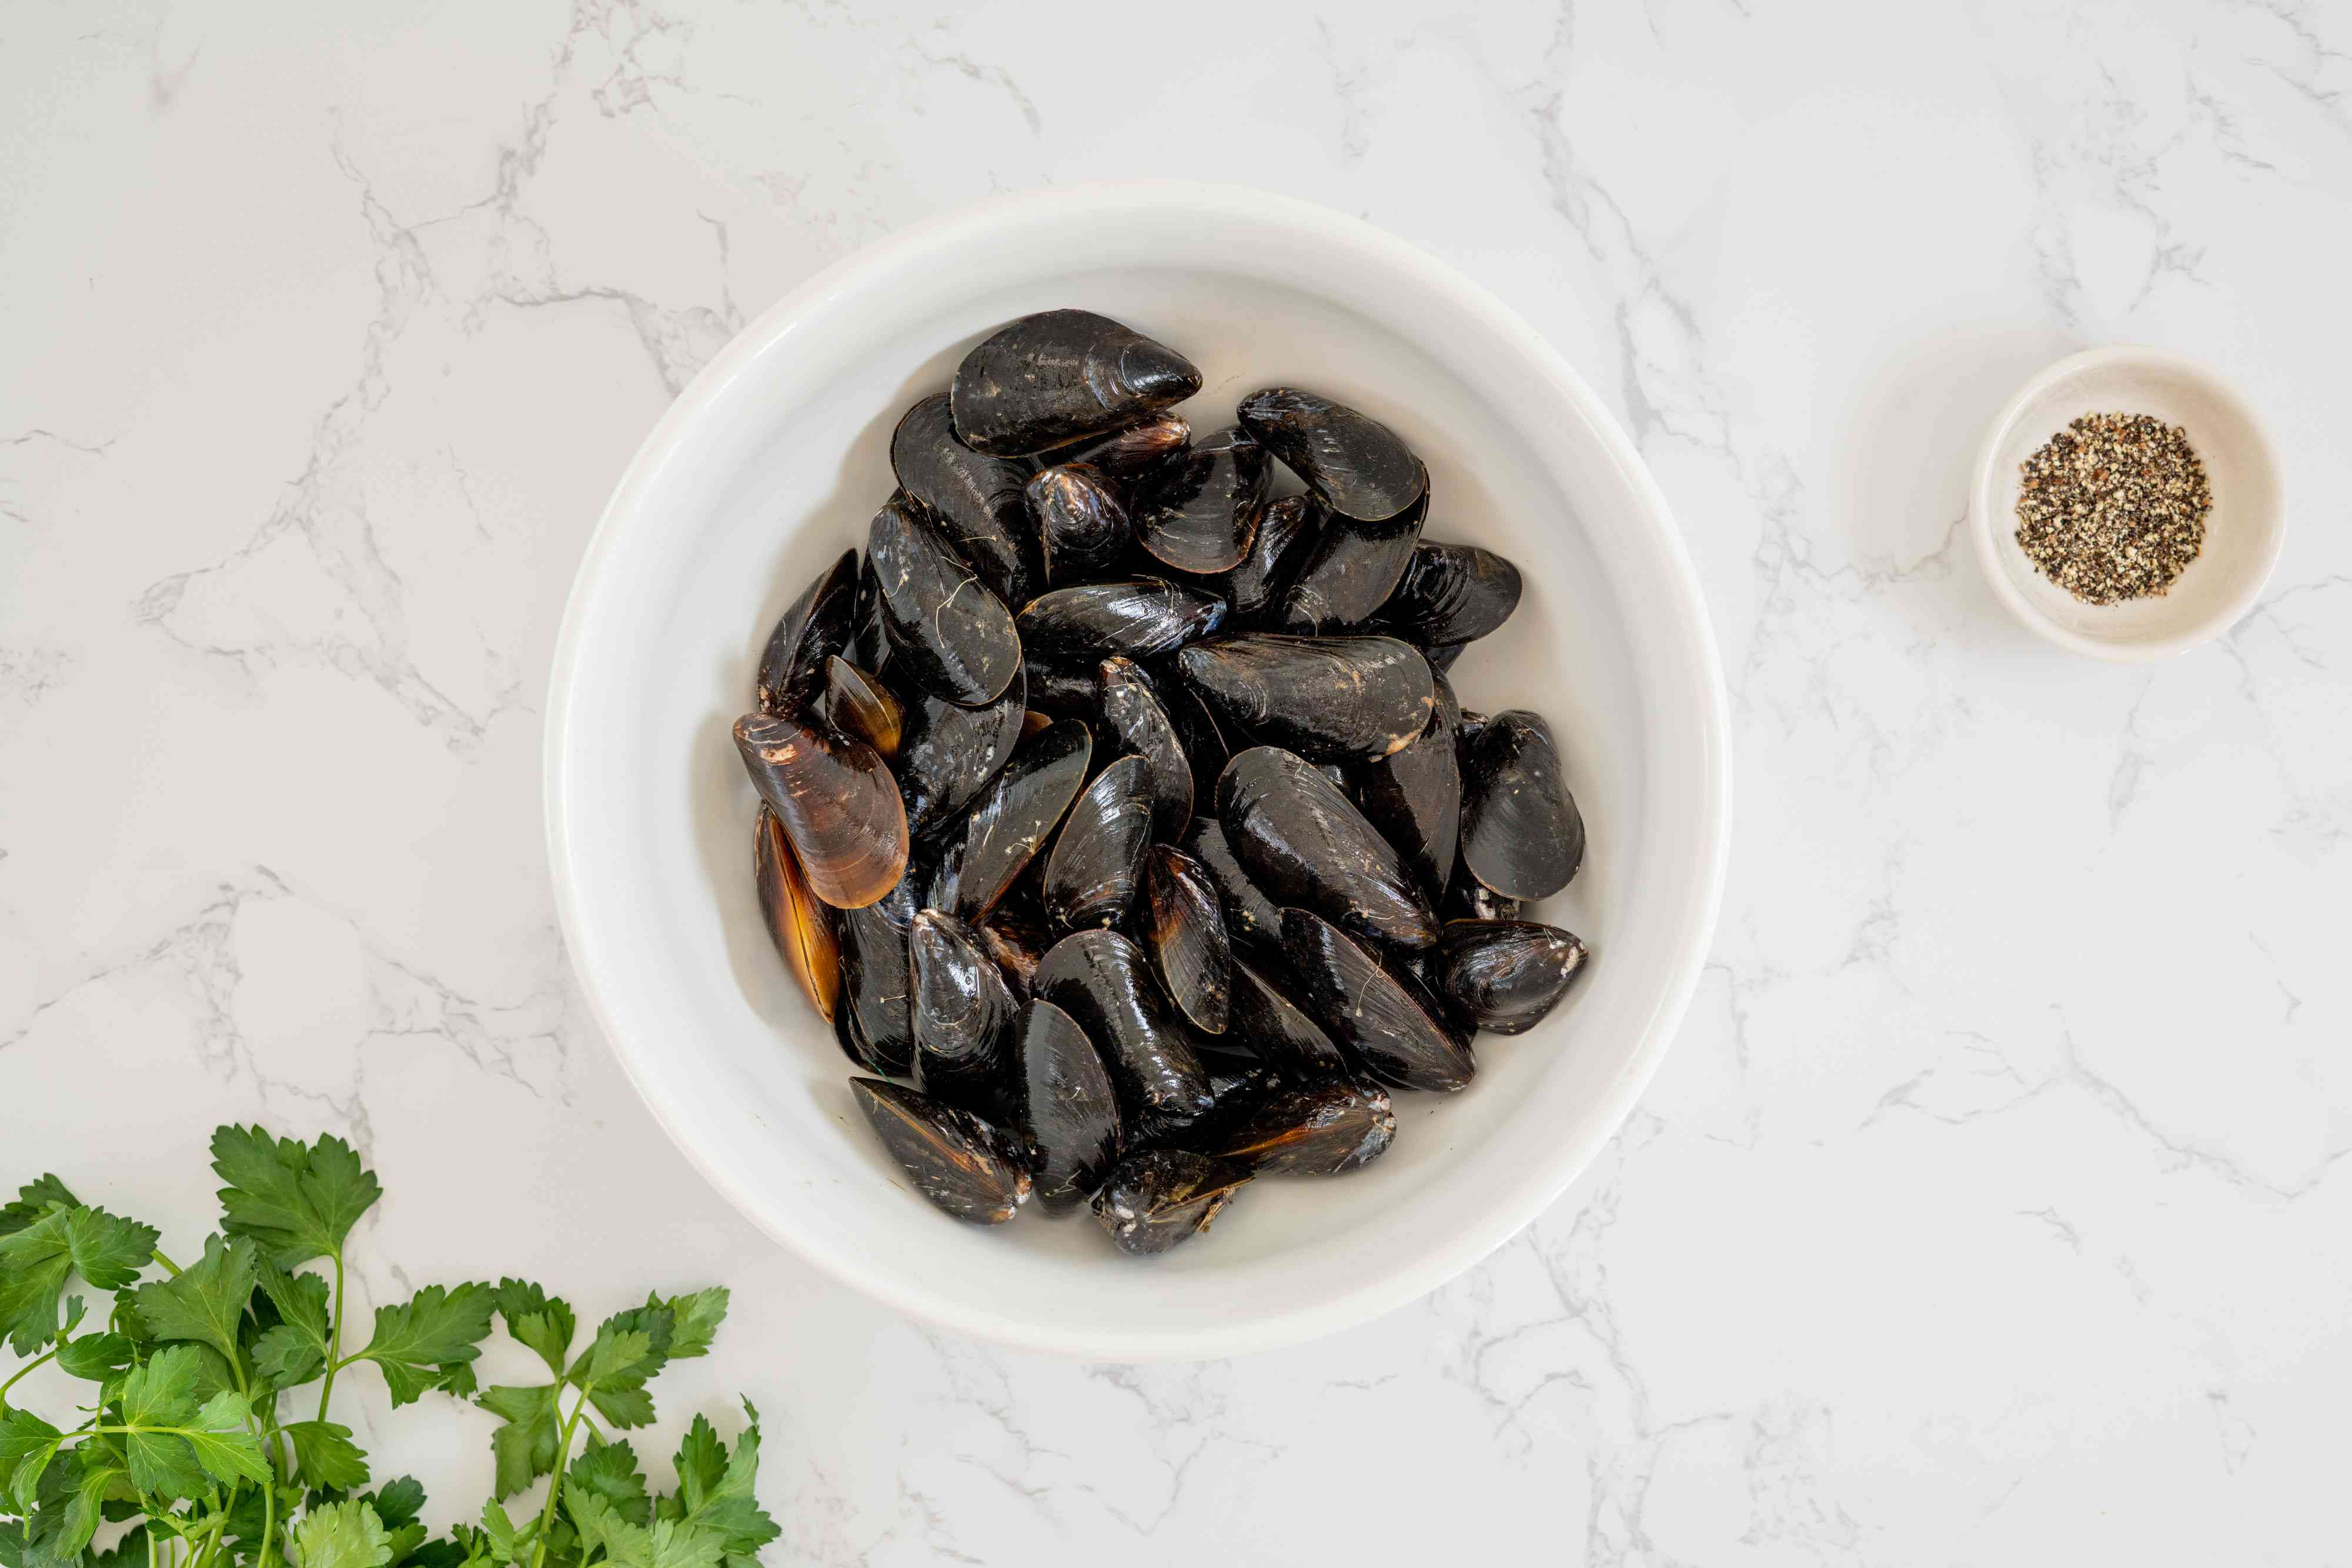 Grilled Mussels ingredients